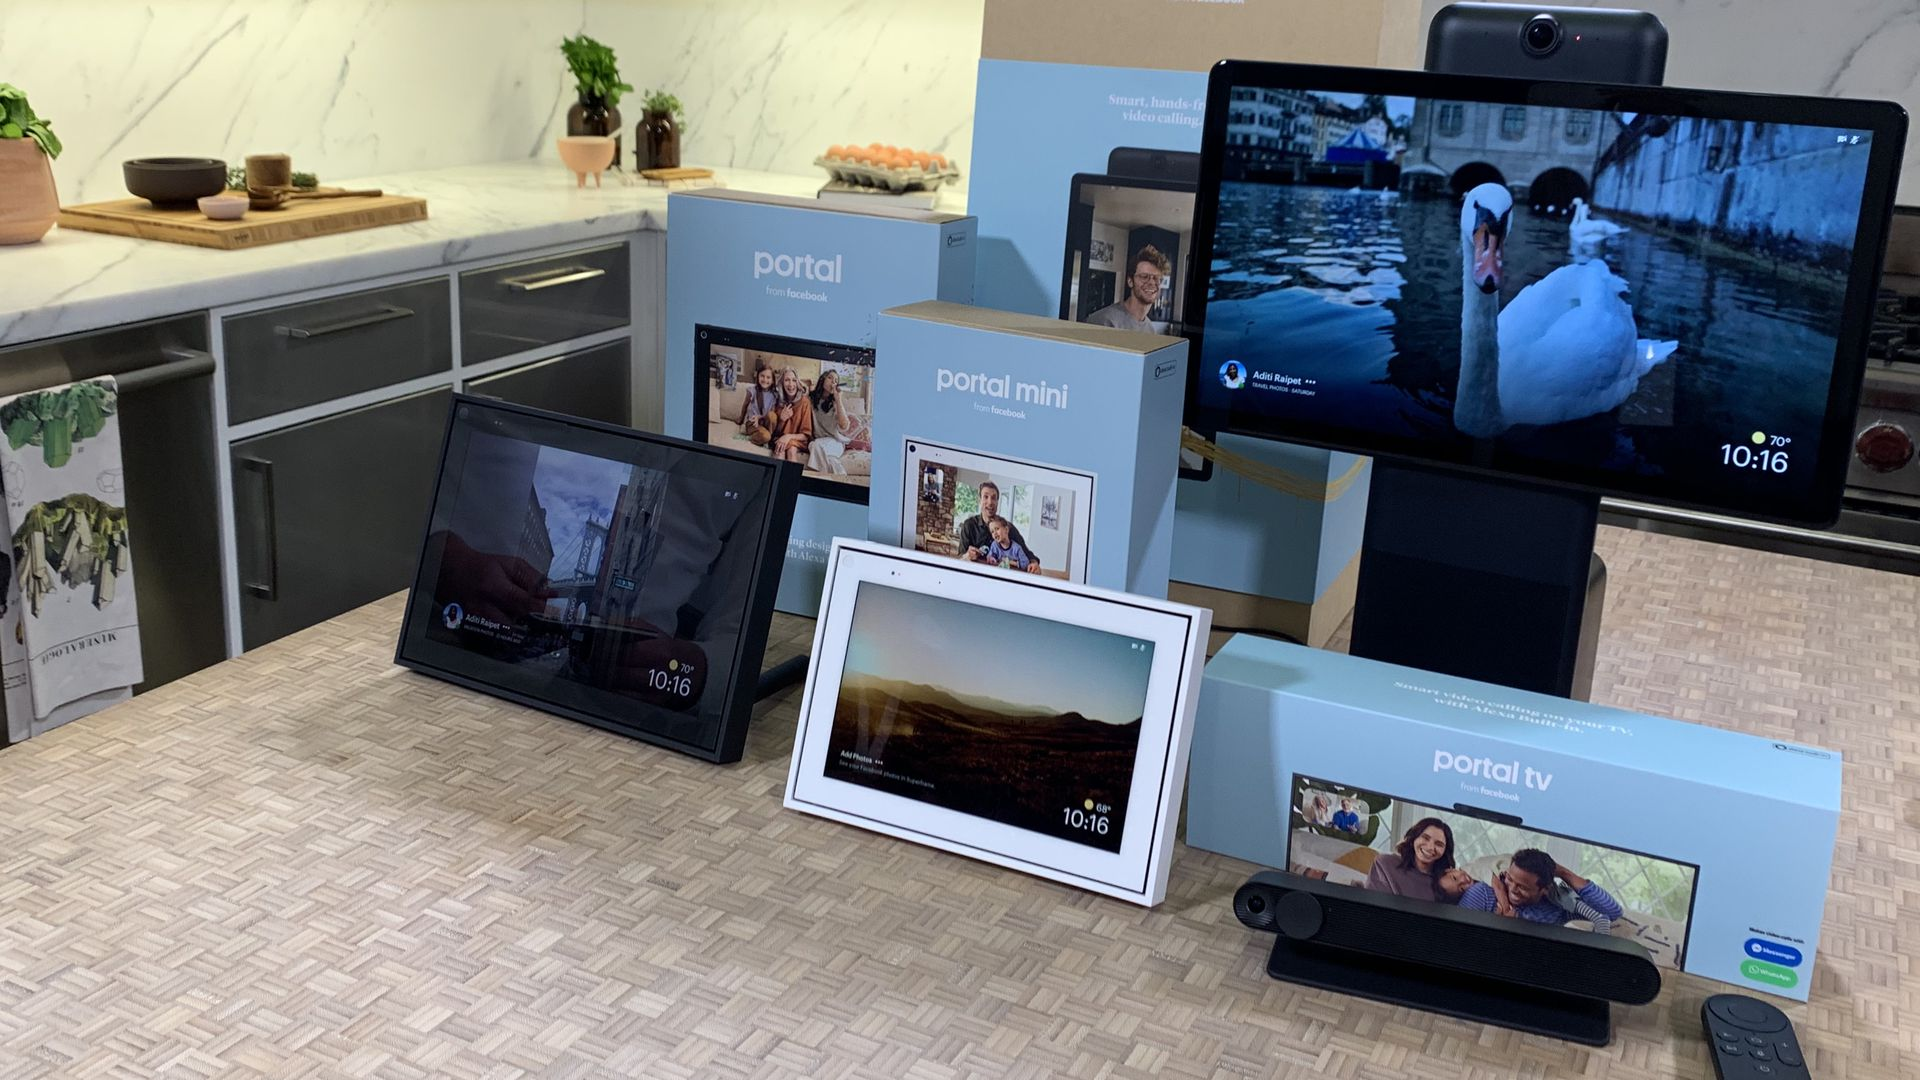 Facebook's expanded family of Portal devices in a kitchen